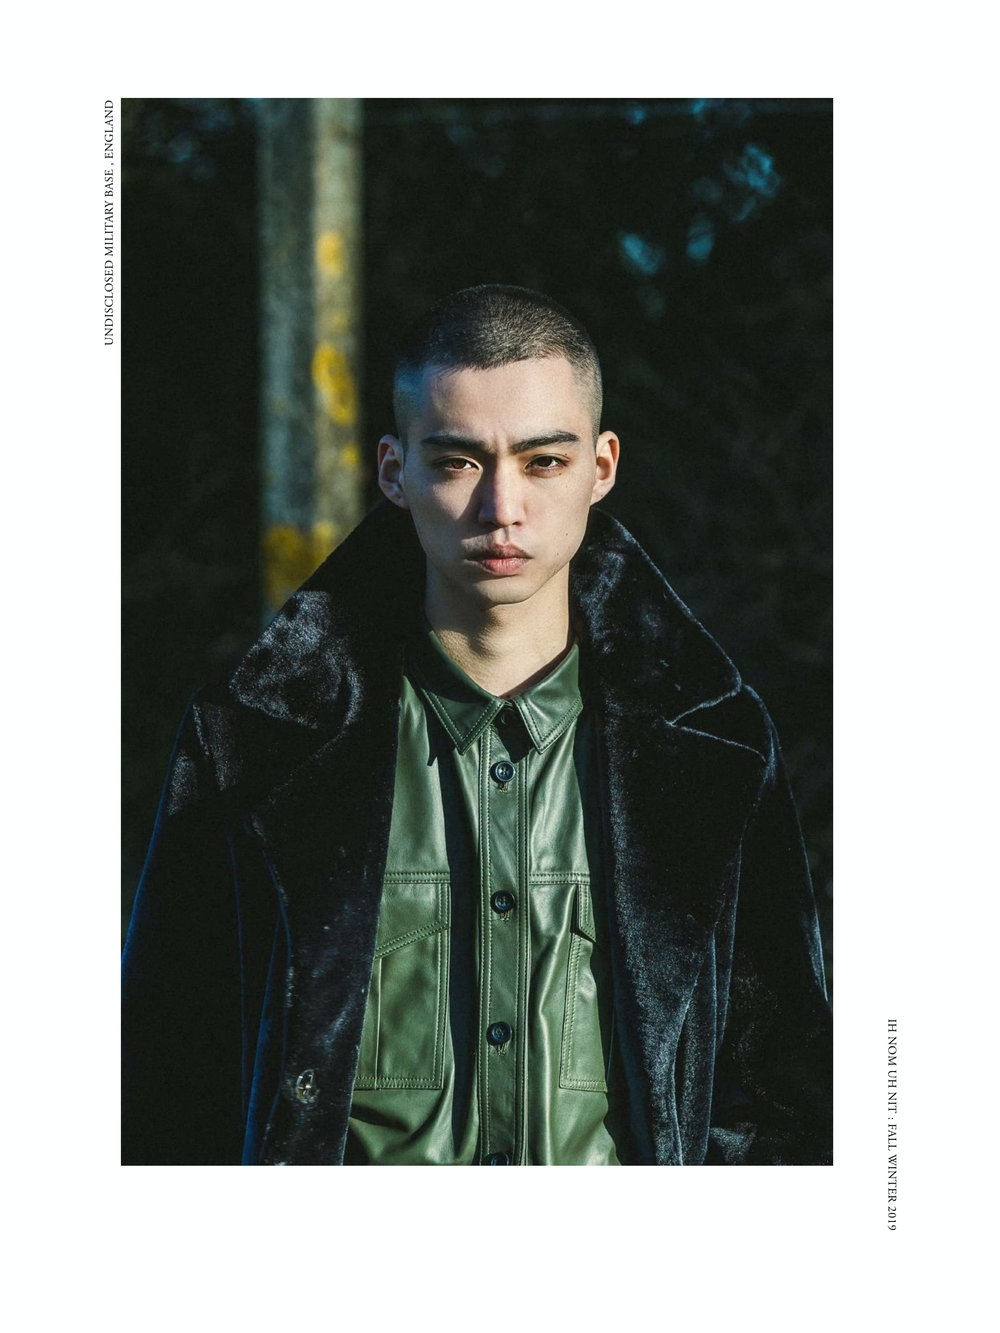 FW19 MAN LOOK BOOK -25.jpg